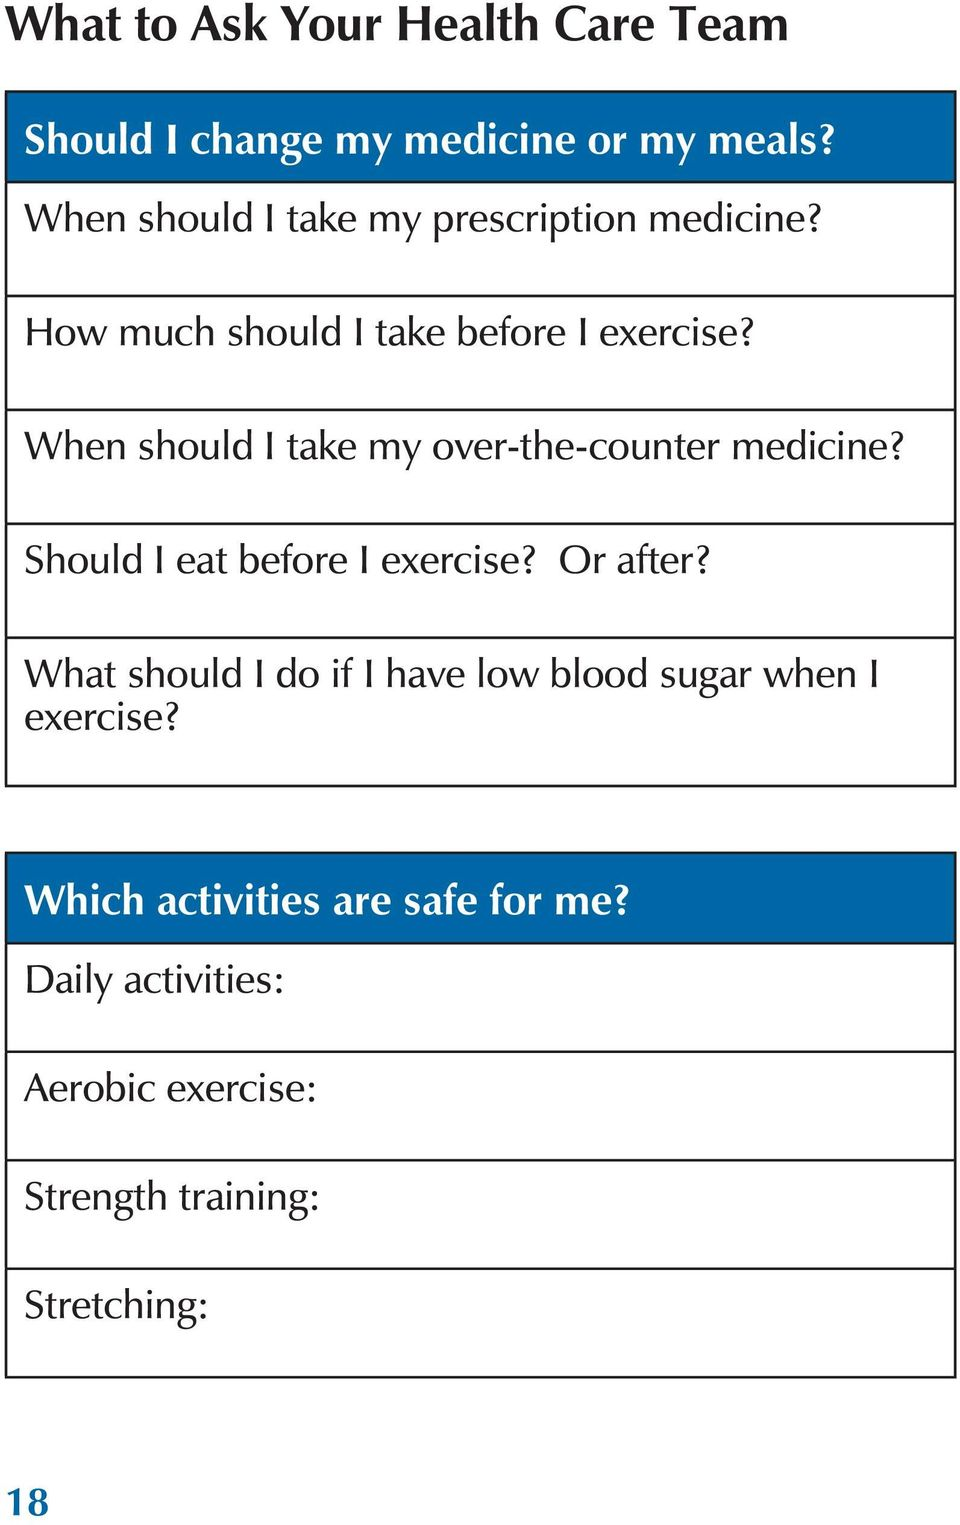 When should I take my over-the-counter medicine? Should I eat before I exercise? Or after?